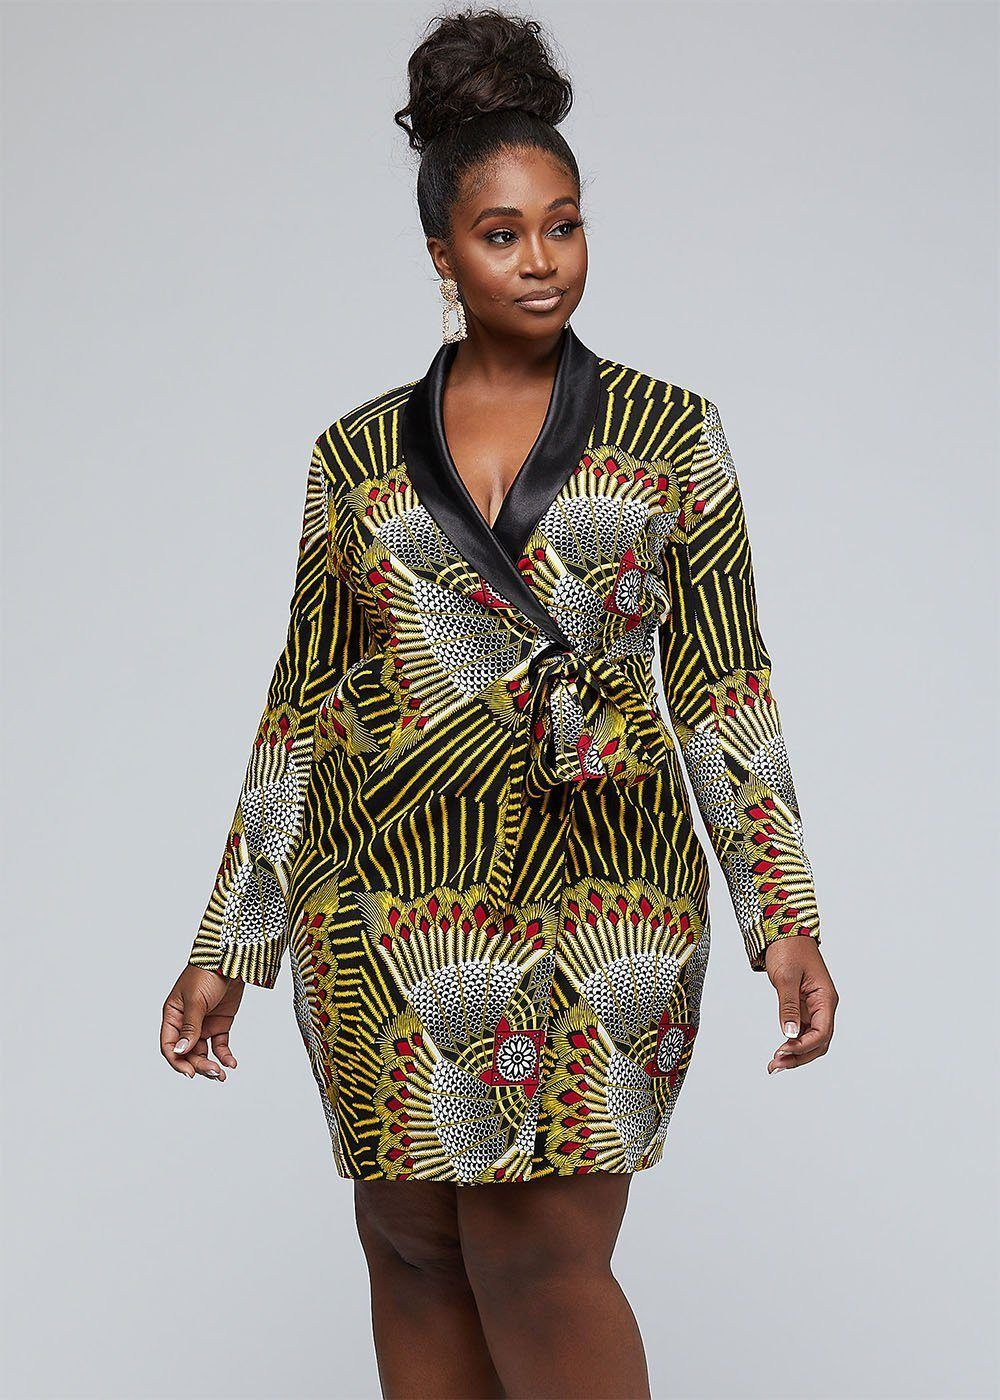 Asani African Print Stretch Woven Blazer Wrap Dress (Yellow Red Fans) #africanprintdresses